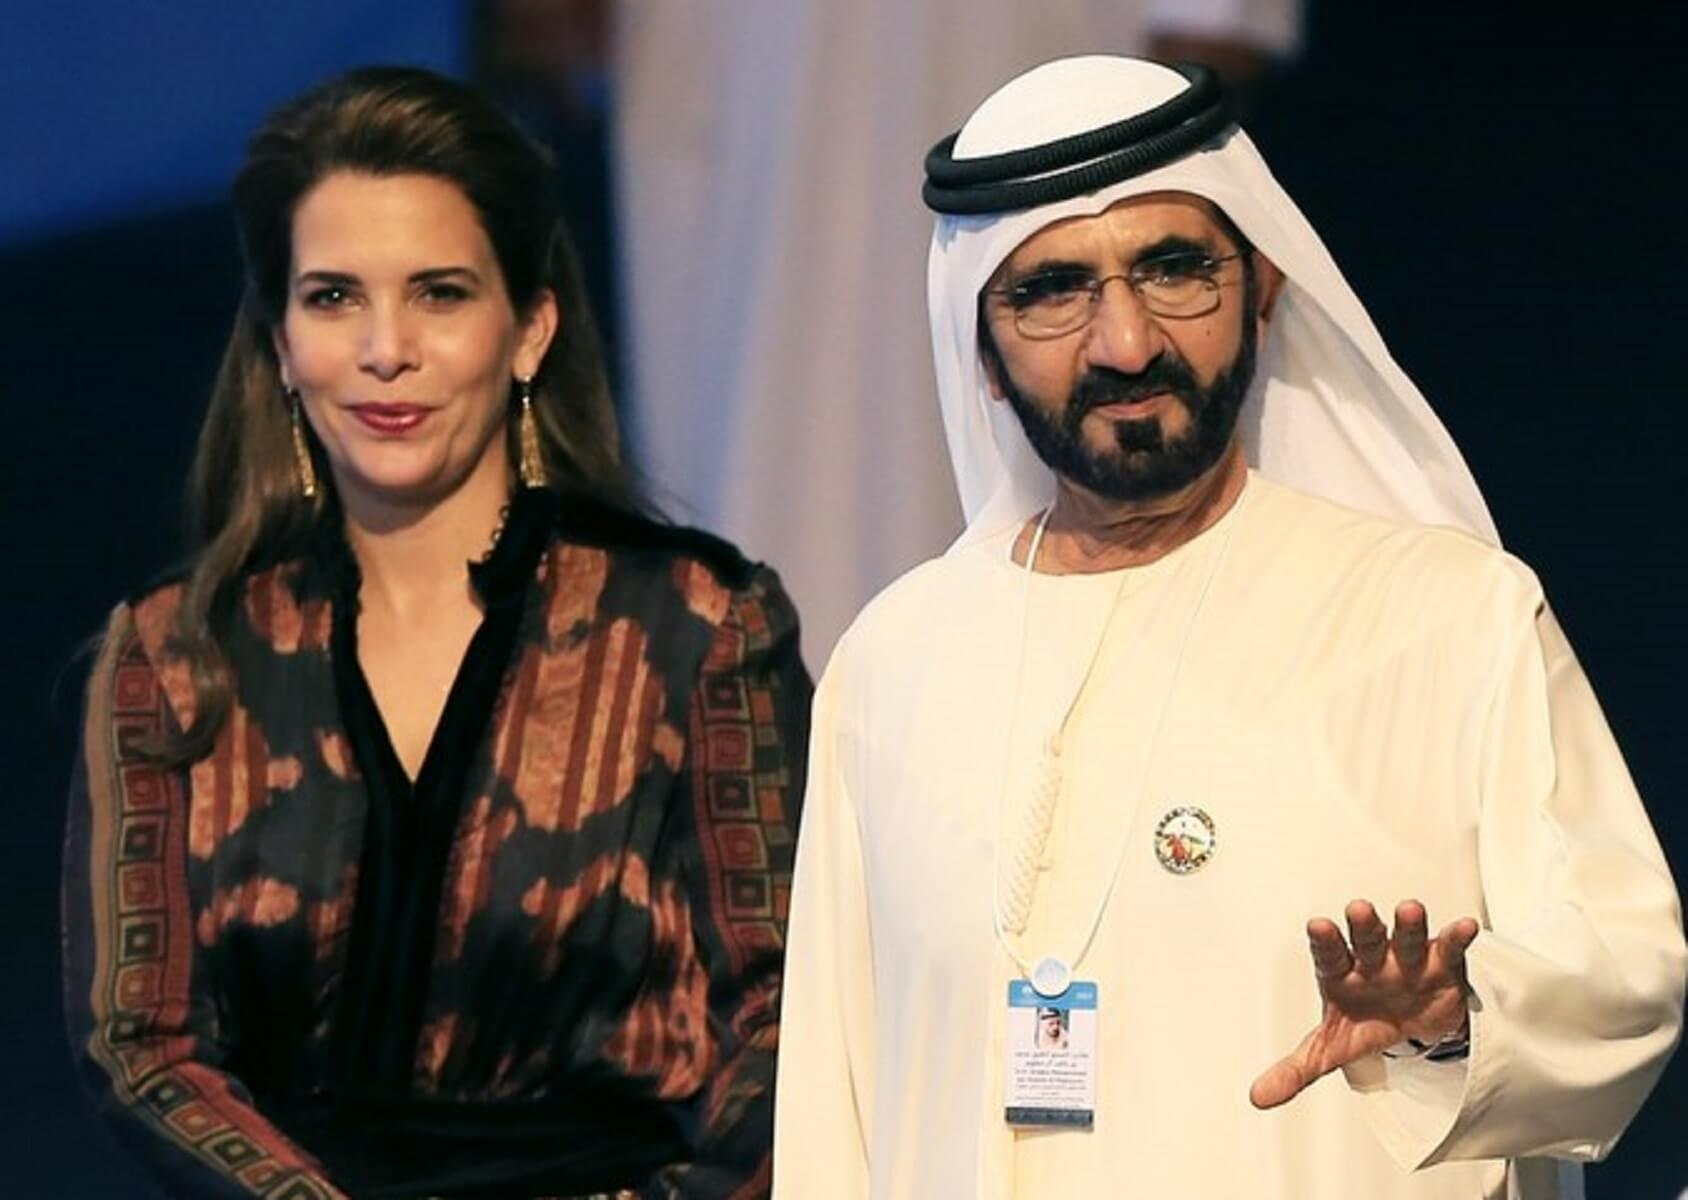 Dubai: Princess Haya messed up! Fears for her life and European asylum!